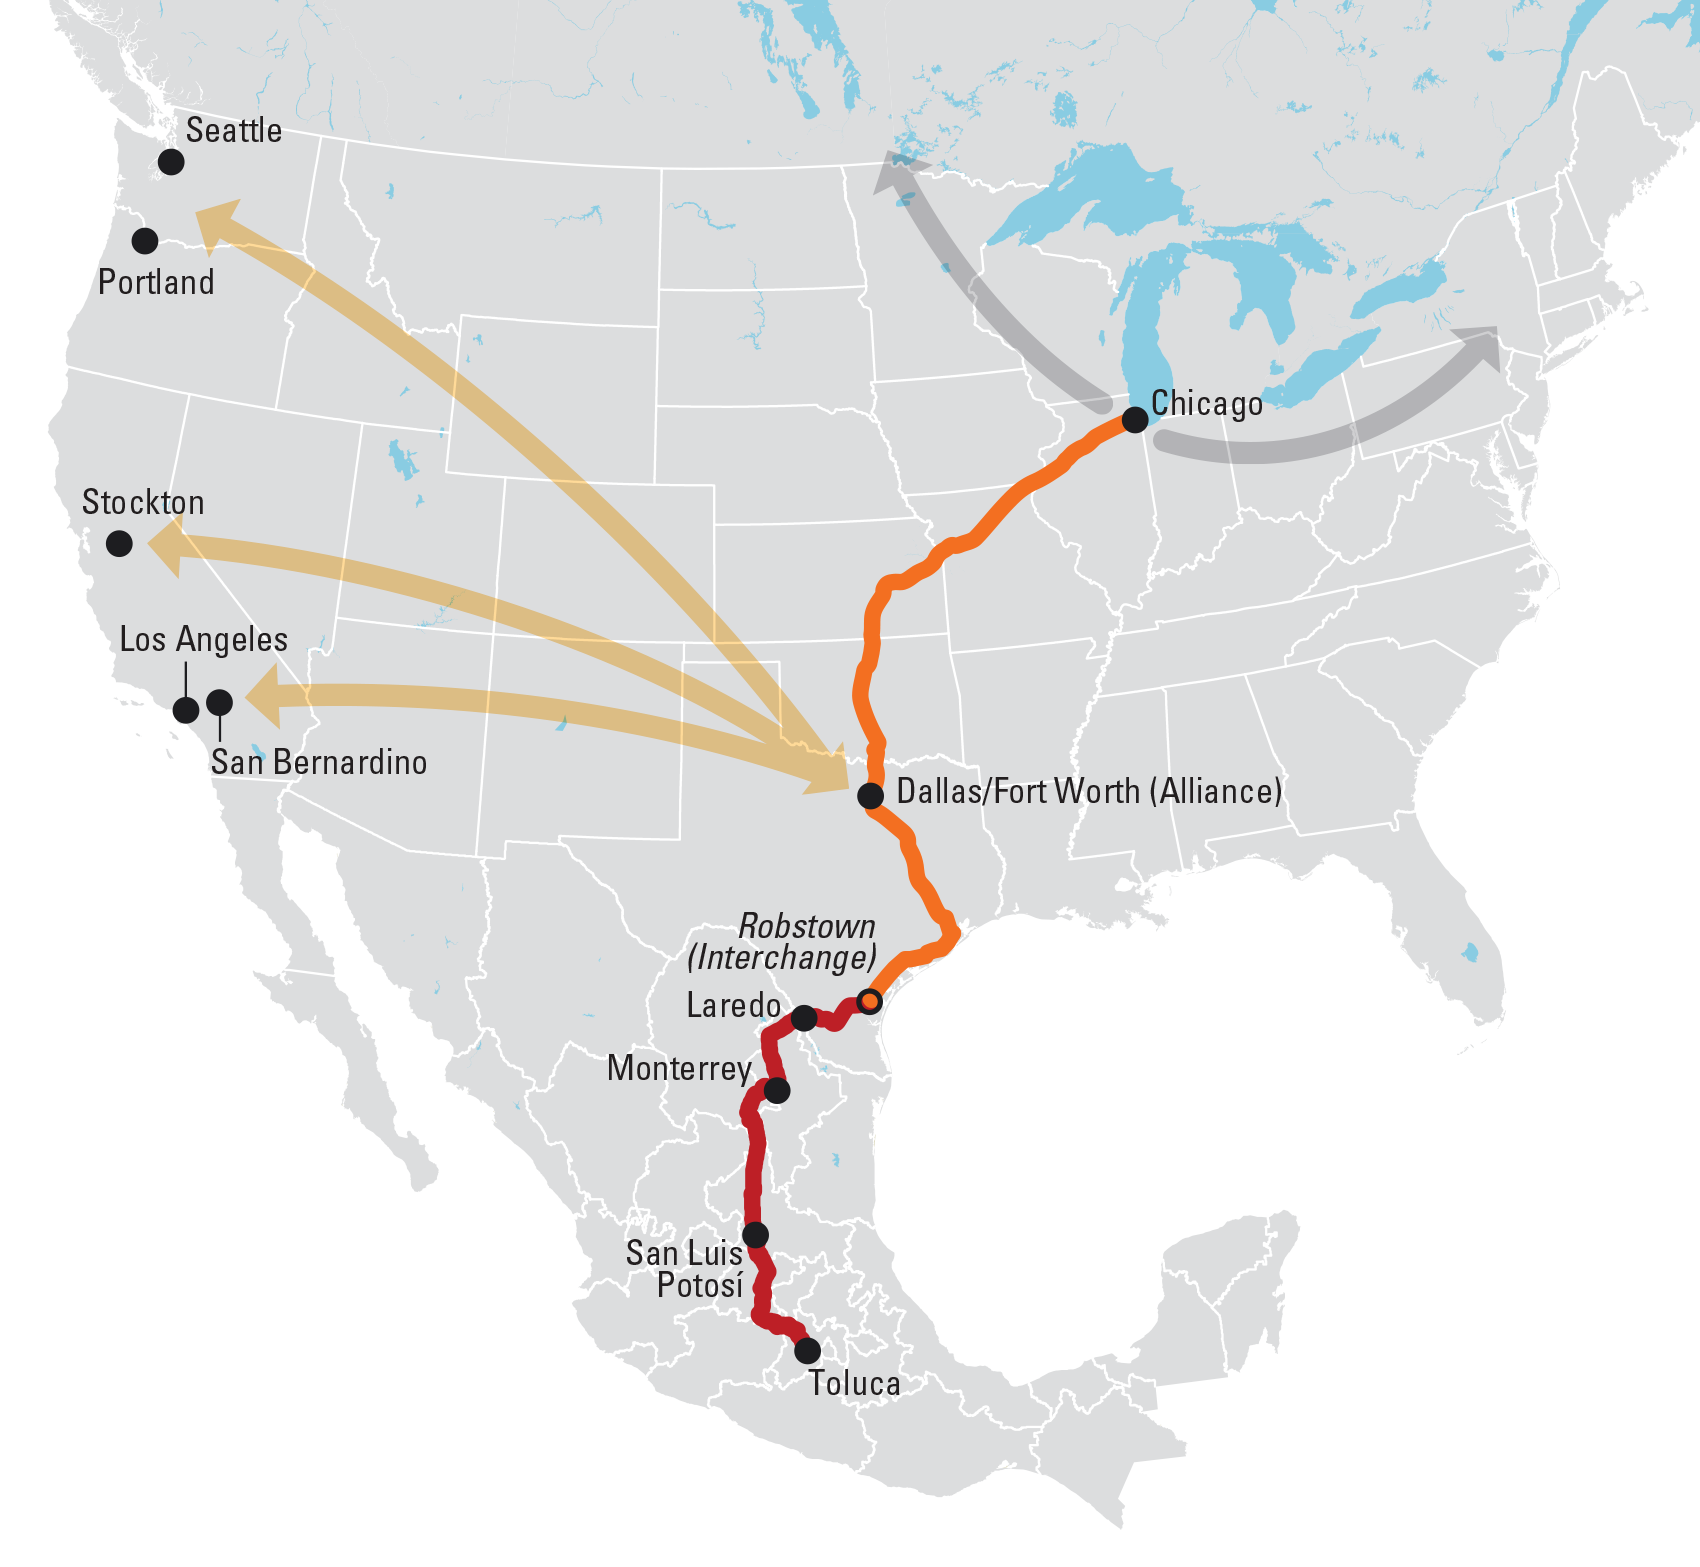 Routes of the new BNSF KCS service for shipping freight to and from Mexico.